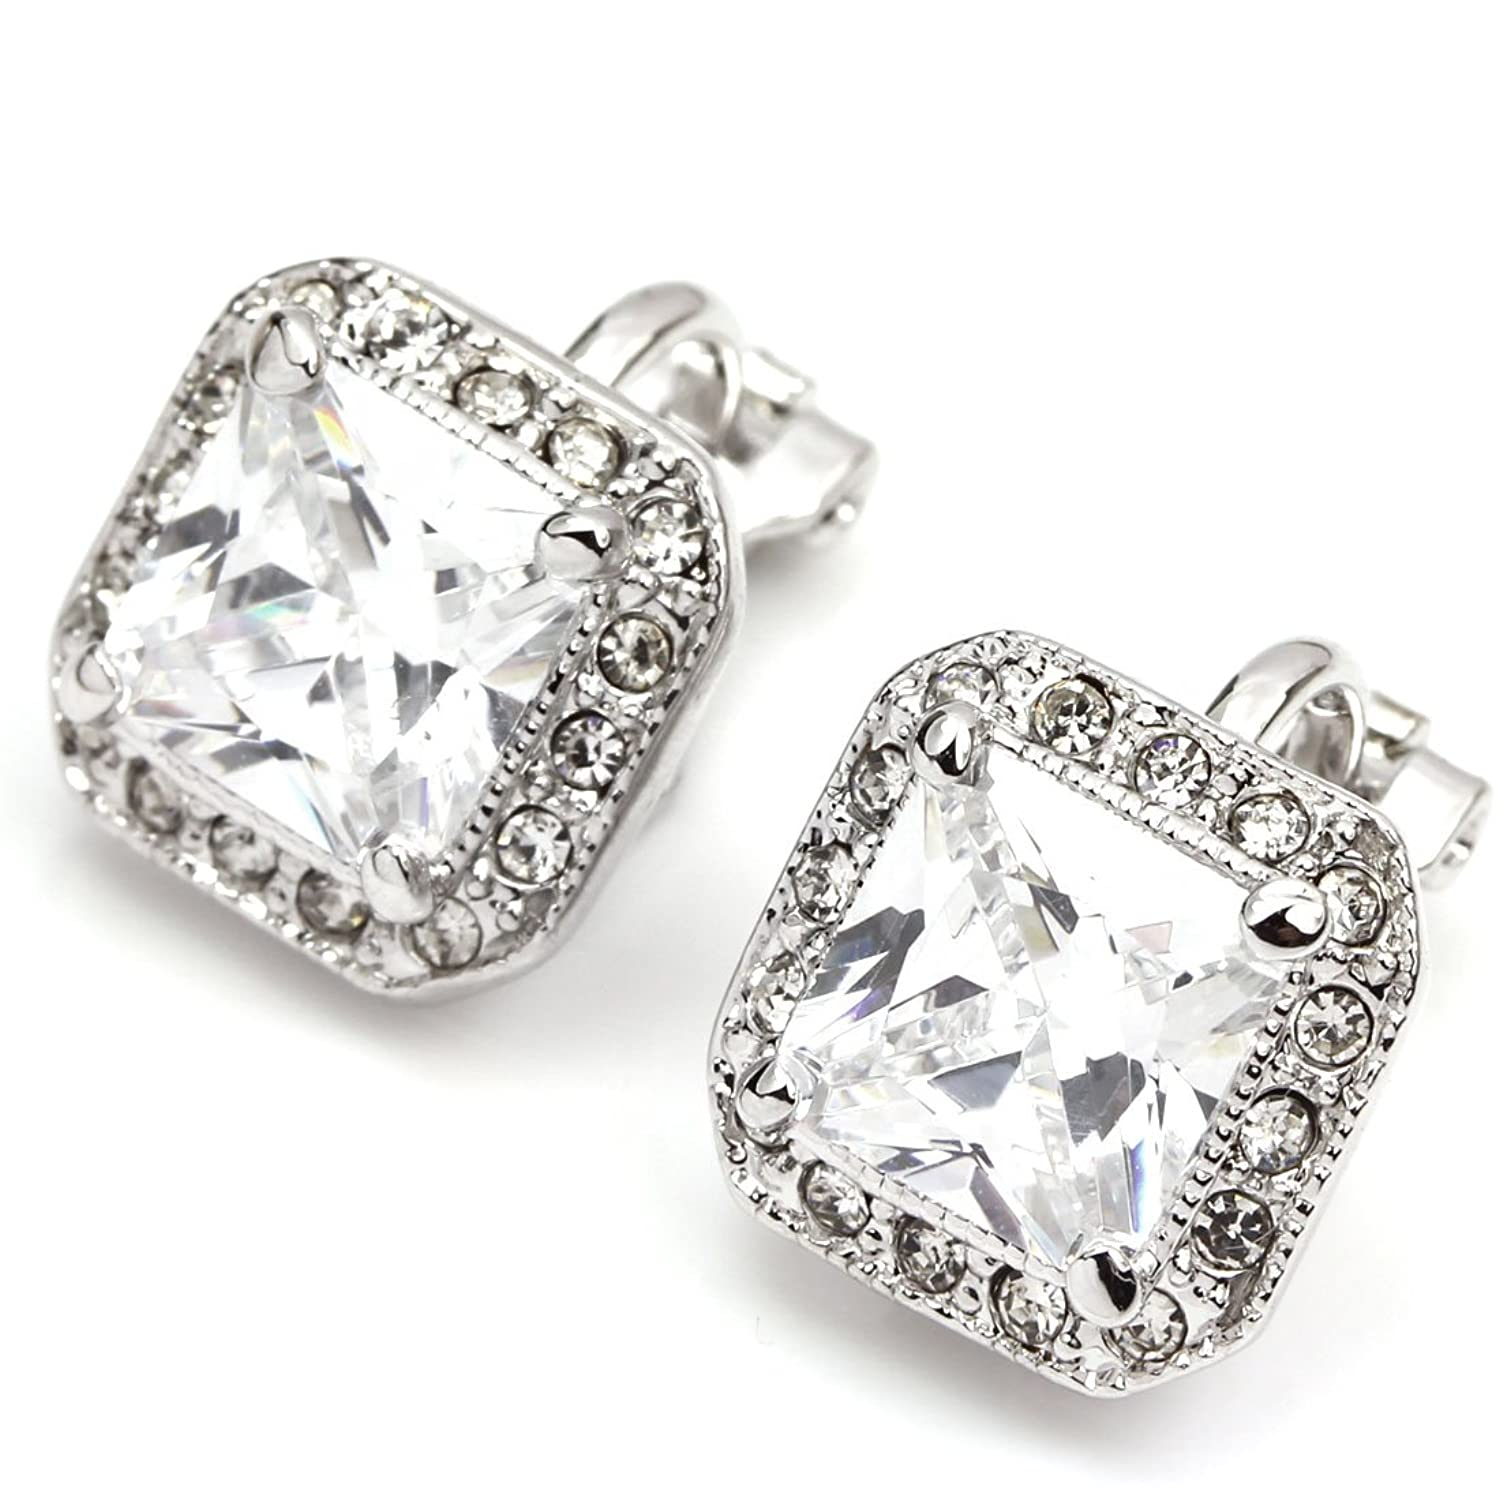 Colorfulday White Gold Plated Crystal Square CZ Princess Clip-on Earring for women qTYiY9anN